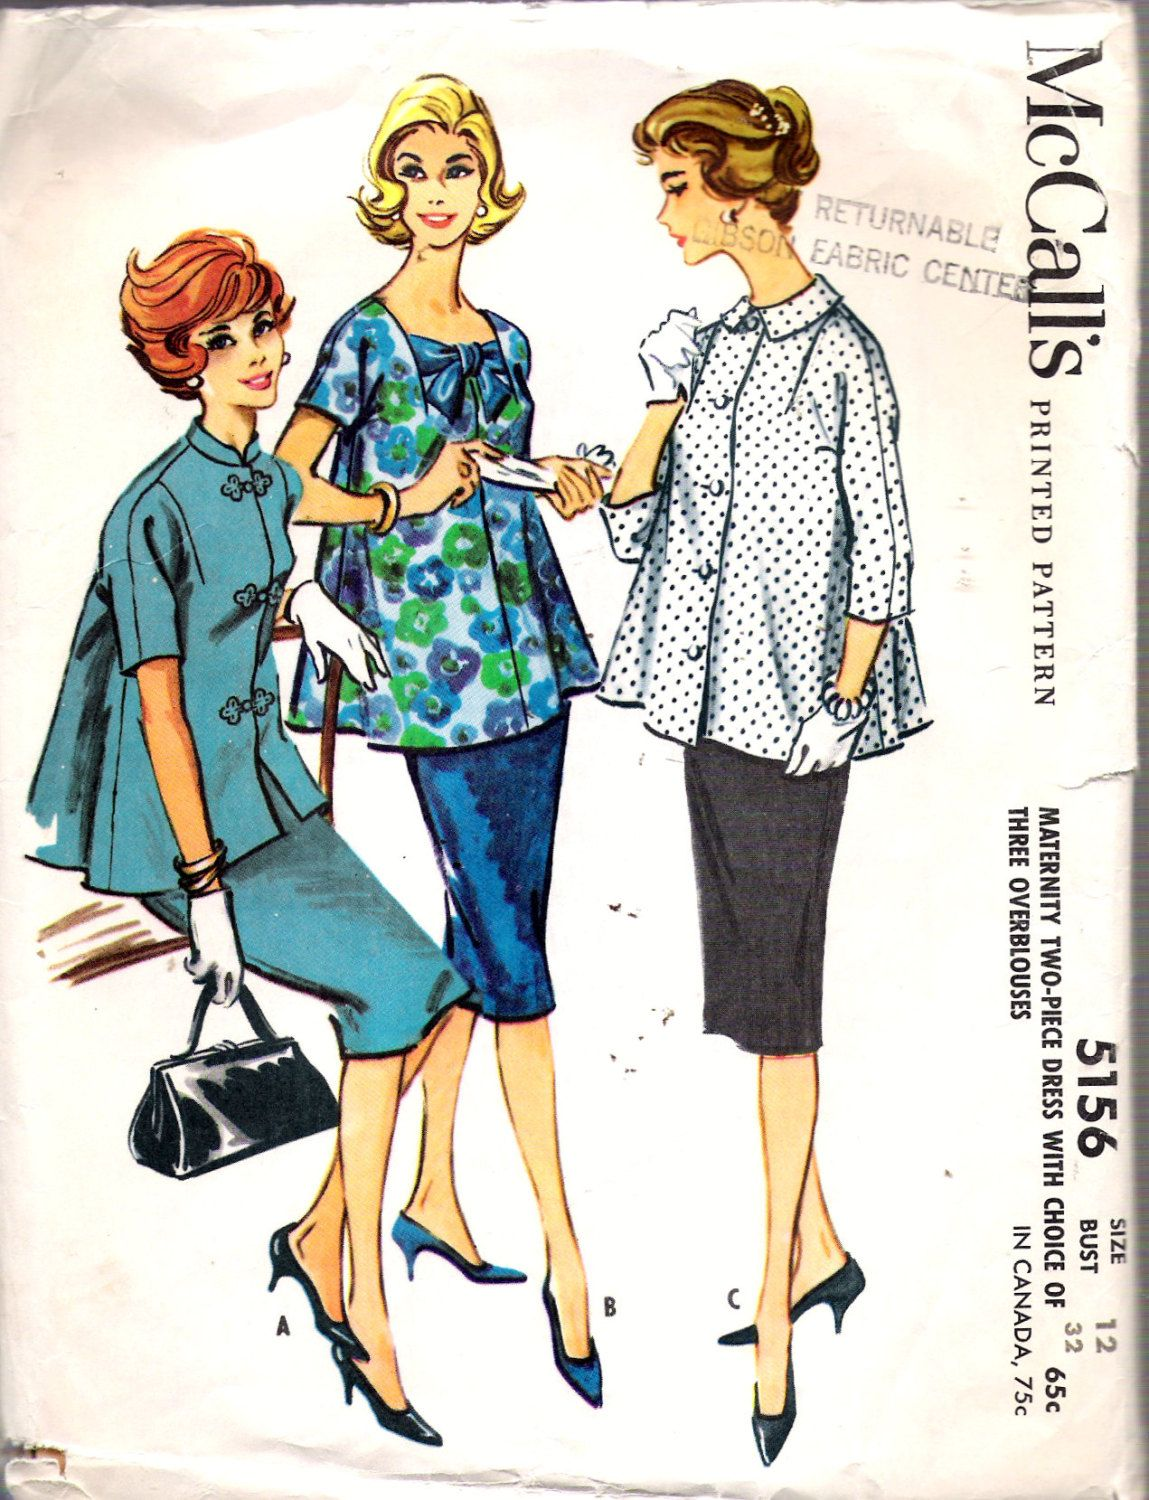 Vintage 1959 mccalls 5156 maternity two piece dress with choice vintage 1959 mccalls 5156 maternity two piece dress with choice of three over blouses sewing pattern size 12 bust 32 ombrellifo Images